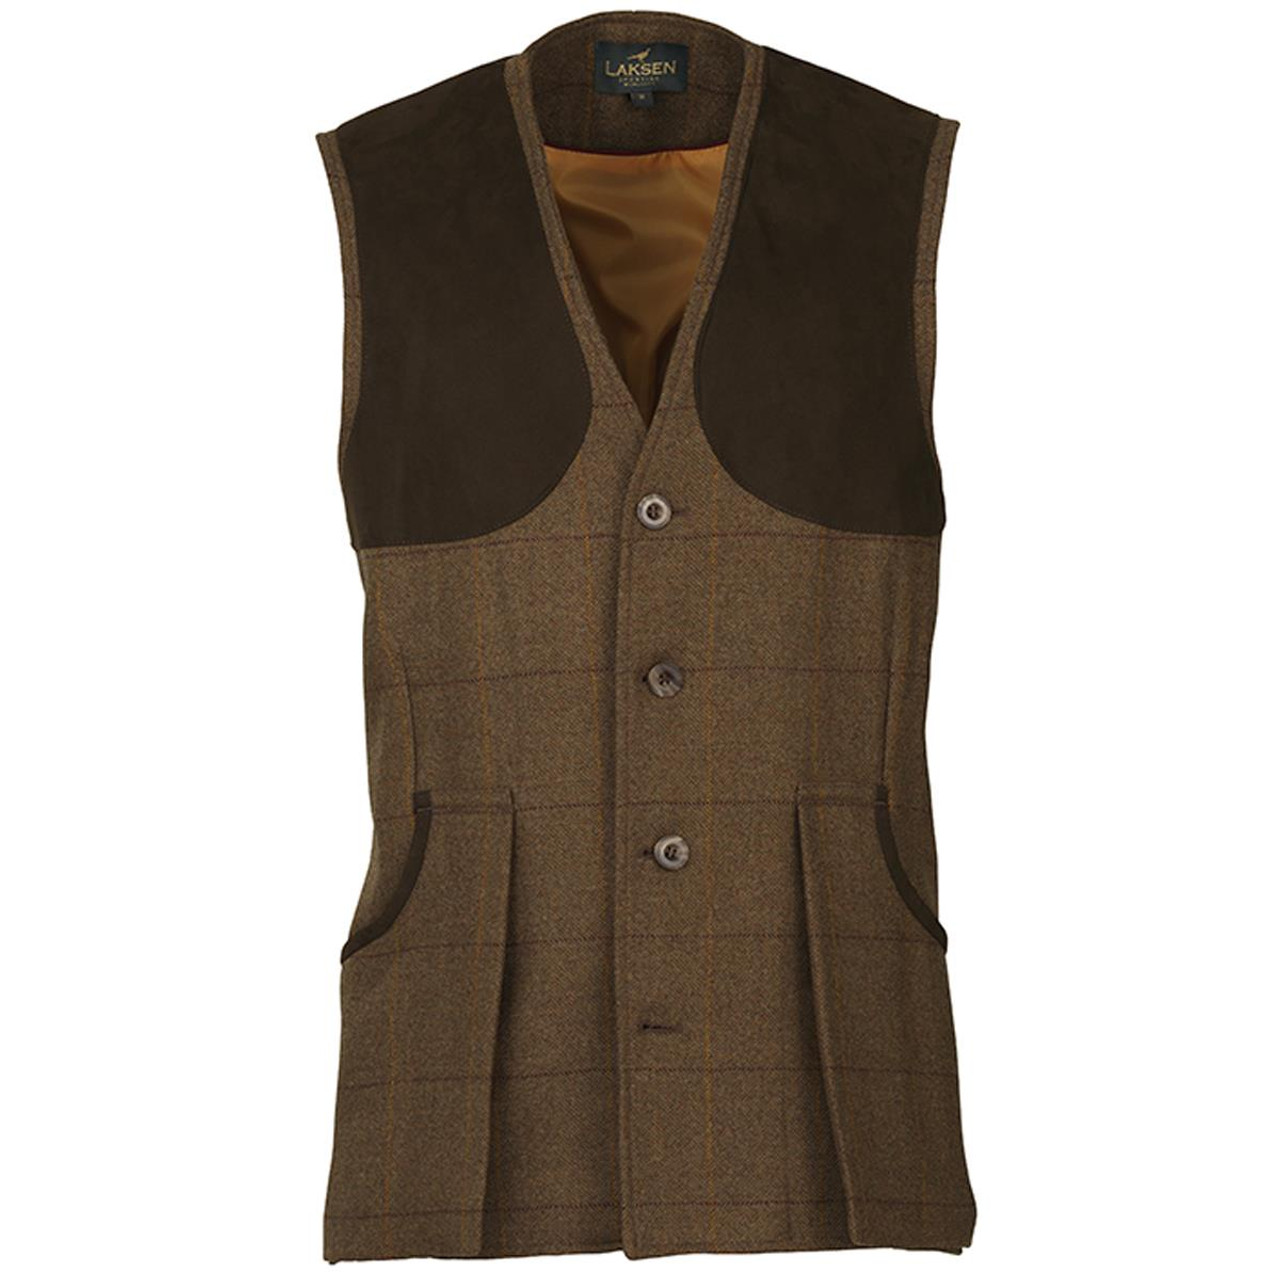 Laksen Mens Bowcombe Shooting Vest